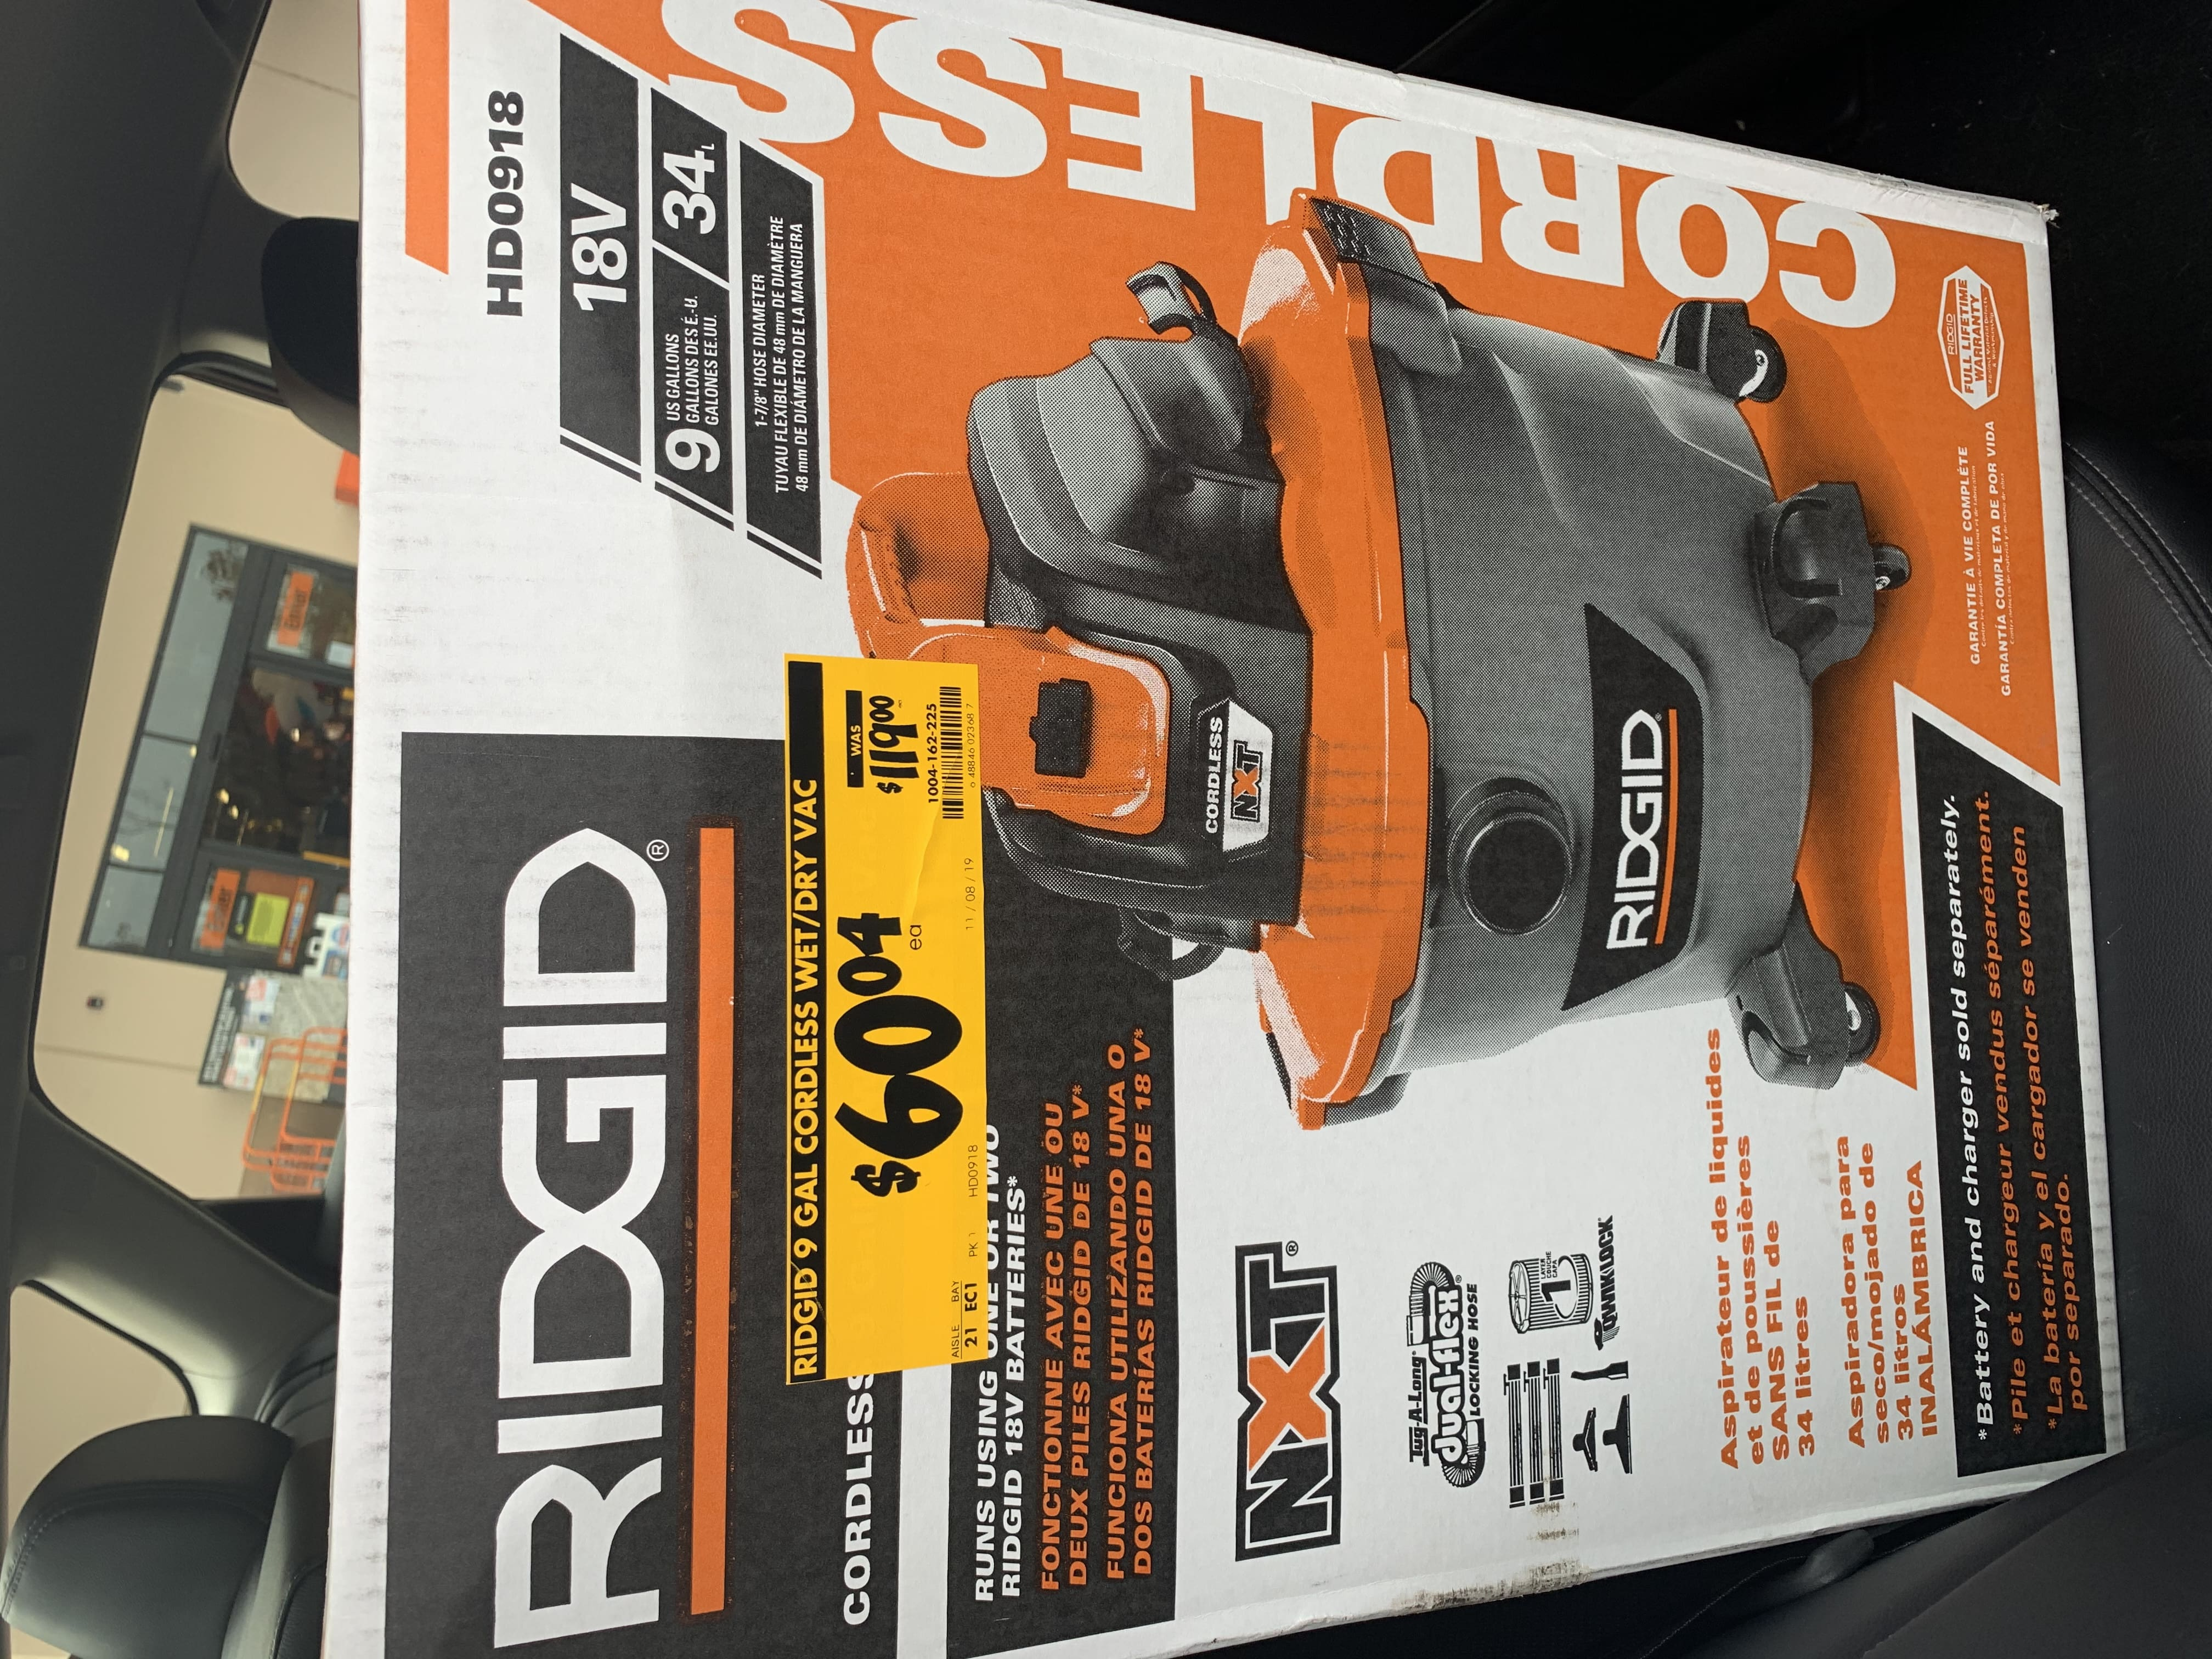 YMMV Ridgid HD0918 18-Volt 9 Gal. Cordless Wet/Dry Shop Vacuum (Tool Only) with Car Nozzle, Utility Nozzle, Wet Nozzle and Extension Wands $60.04